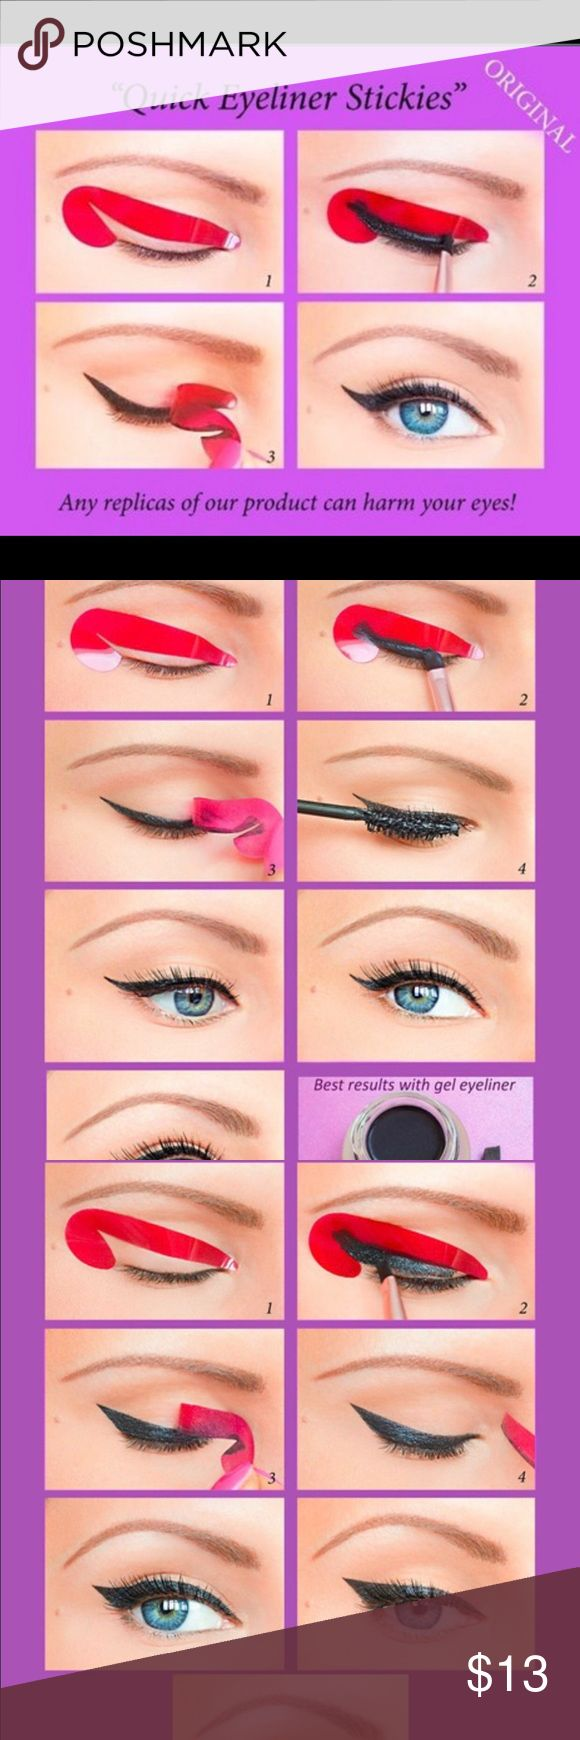 💙24 Pcs Quick Eyeliner Stickies Stickers Quick Eyeliner Stickies  are designed to save your time and efforts and make the eye make-up application even more fun! Each stickie is small and compact. In each  Quick Eyeliner Stickies -set you will find a step-by-step guide with photos and Stickies of different shapes, which will help you create the 6 most popular and trendy Eyeliner looks: -Classic Eyeliner -Thin Eyeliner -Bold Eye Eyeliner -Extravagant Eyeliner -Double Eyeliner -Fish Tail…